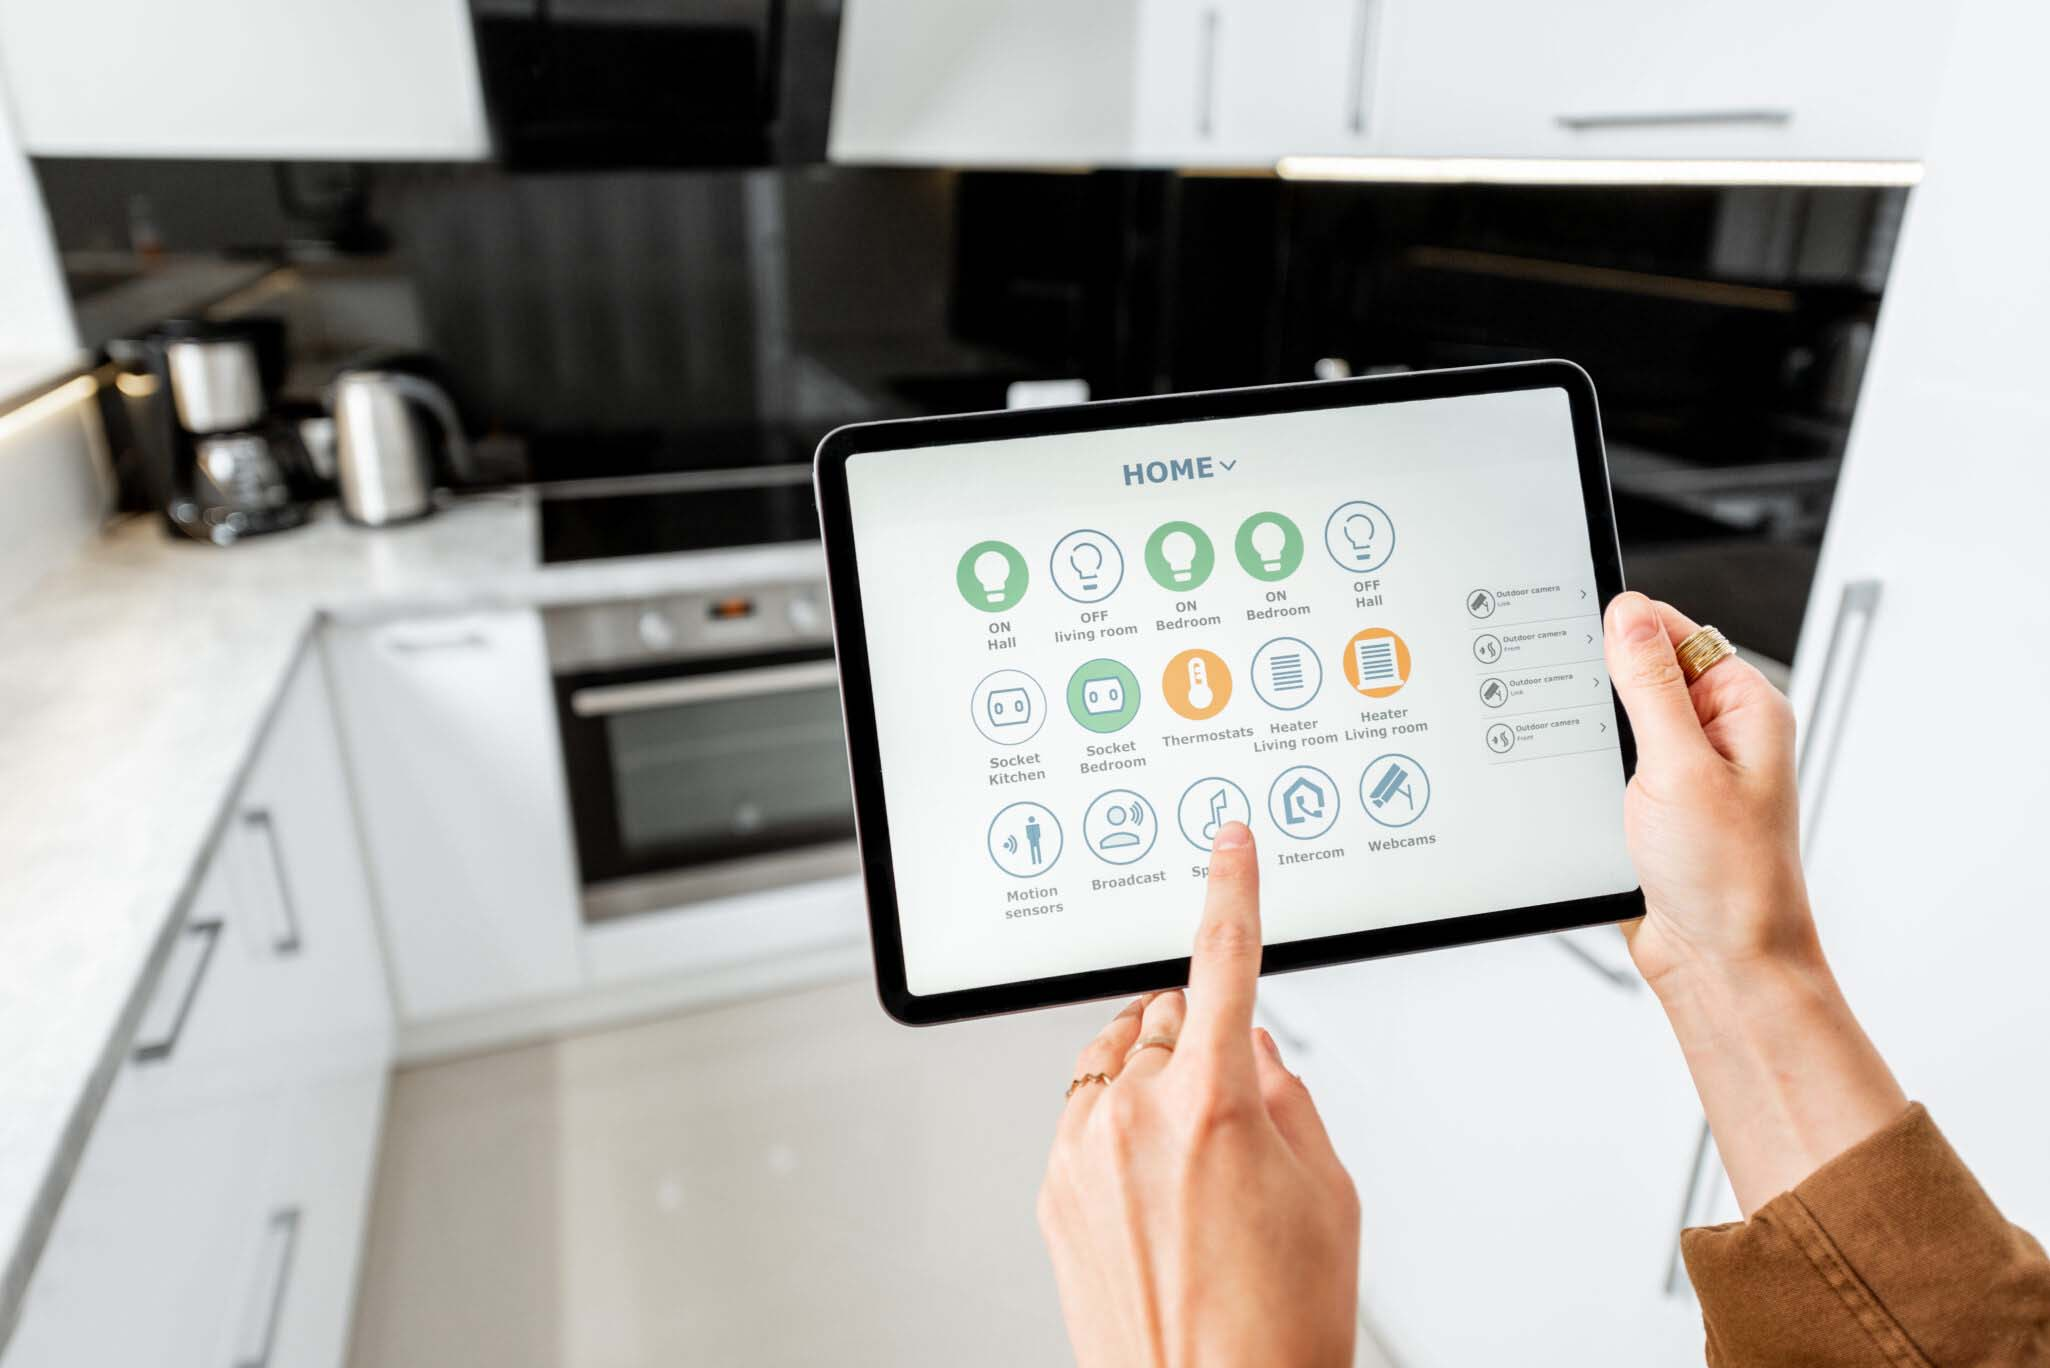 Appliances every apartment should have